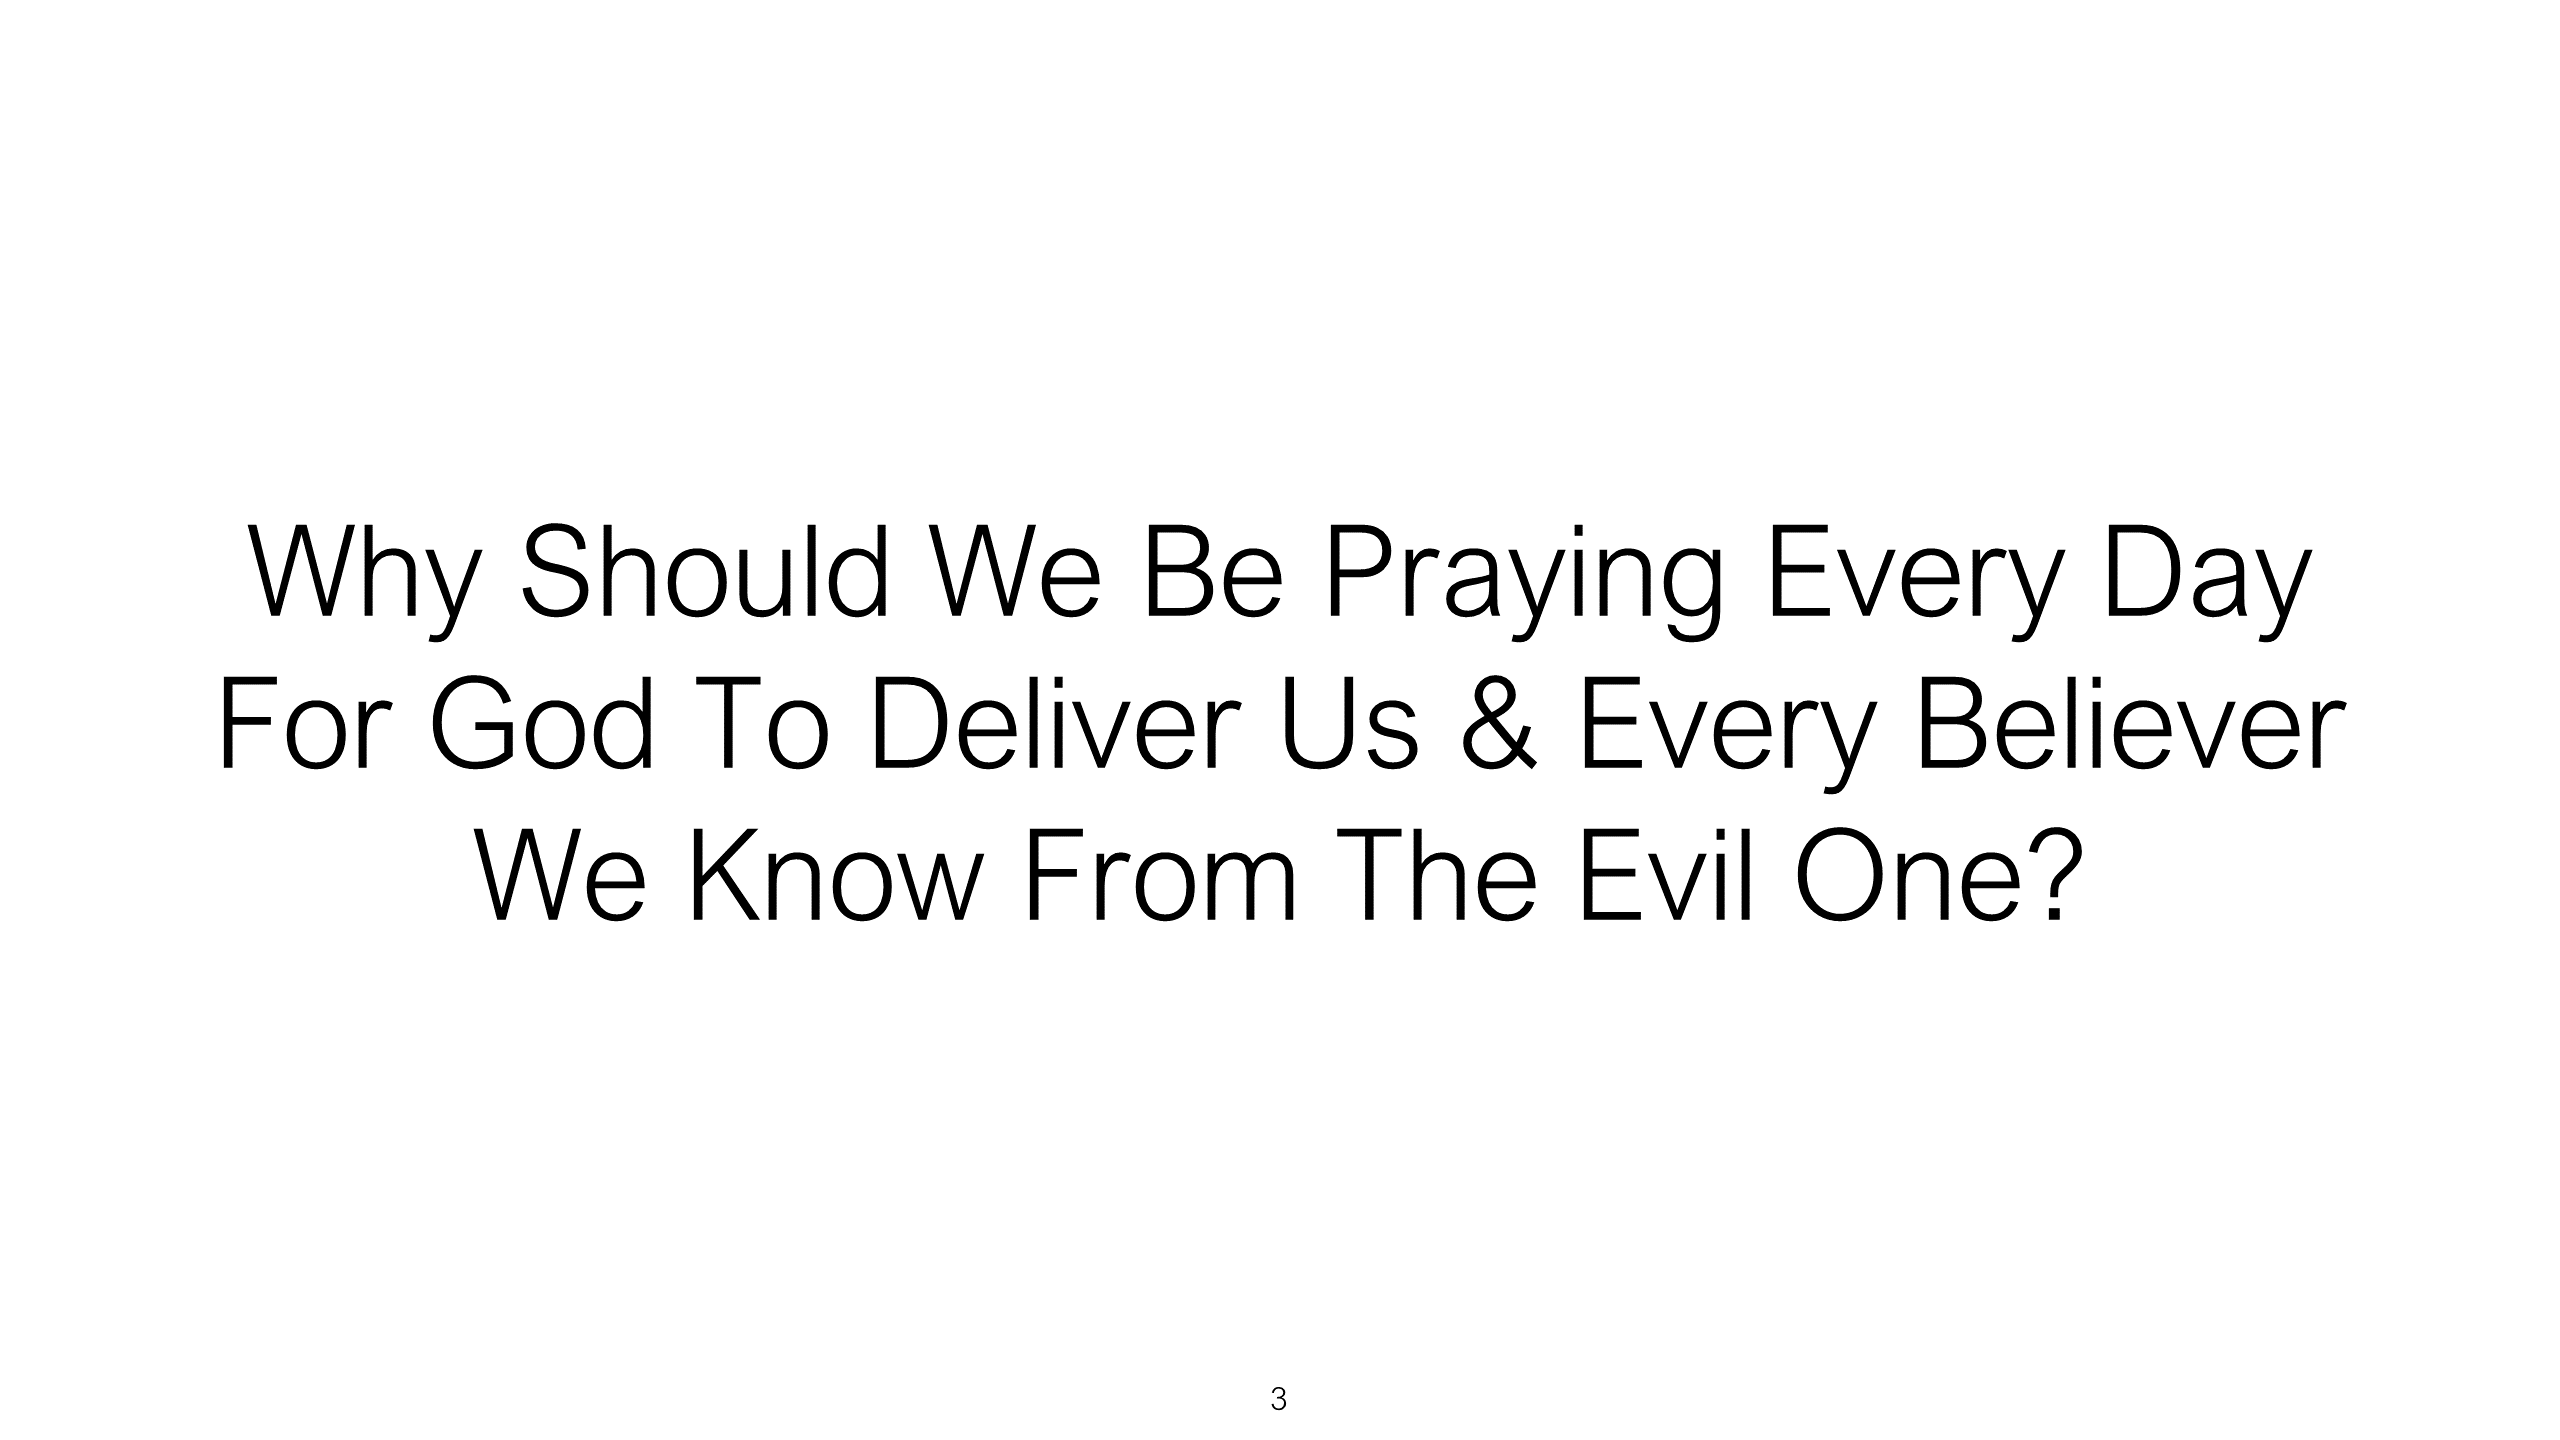 SWS-11 - Why Should We Be Praying Every Day For God To Deliver Us And Every Believer We Know From The Evil One (3)